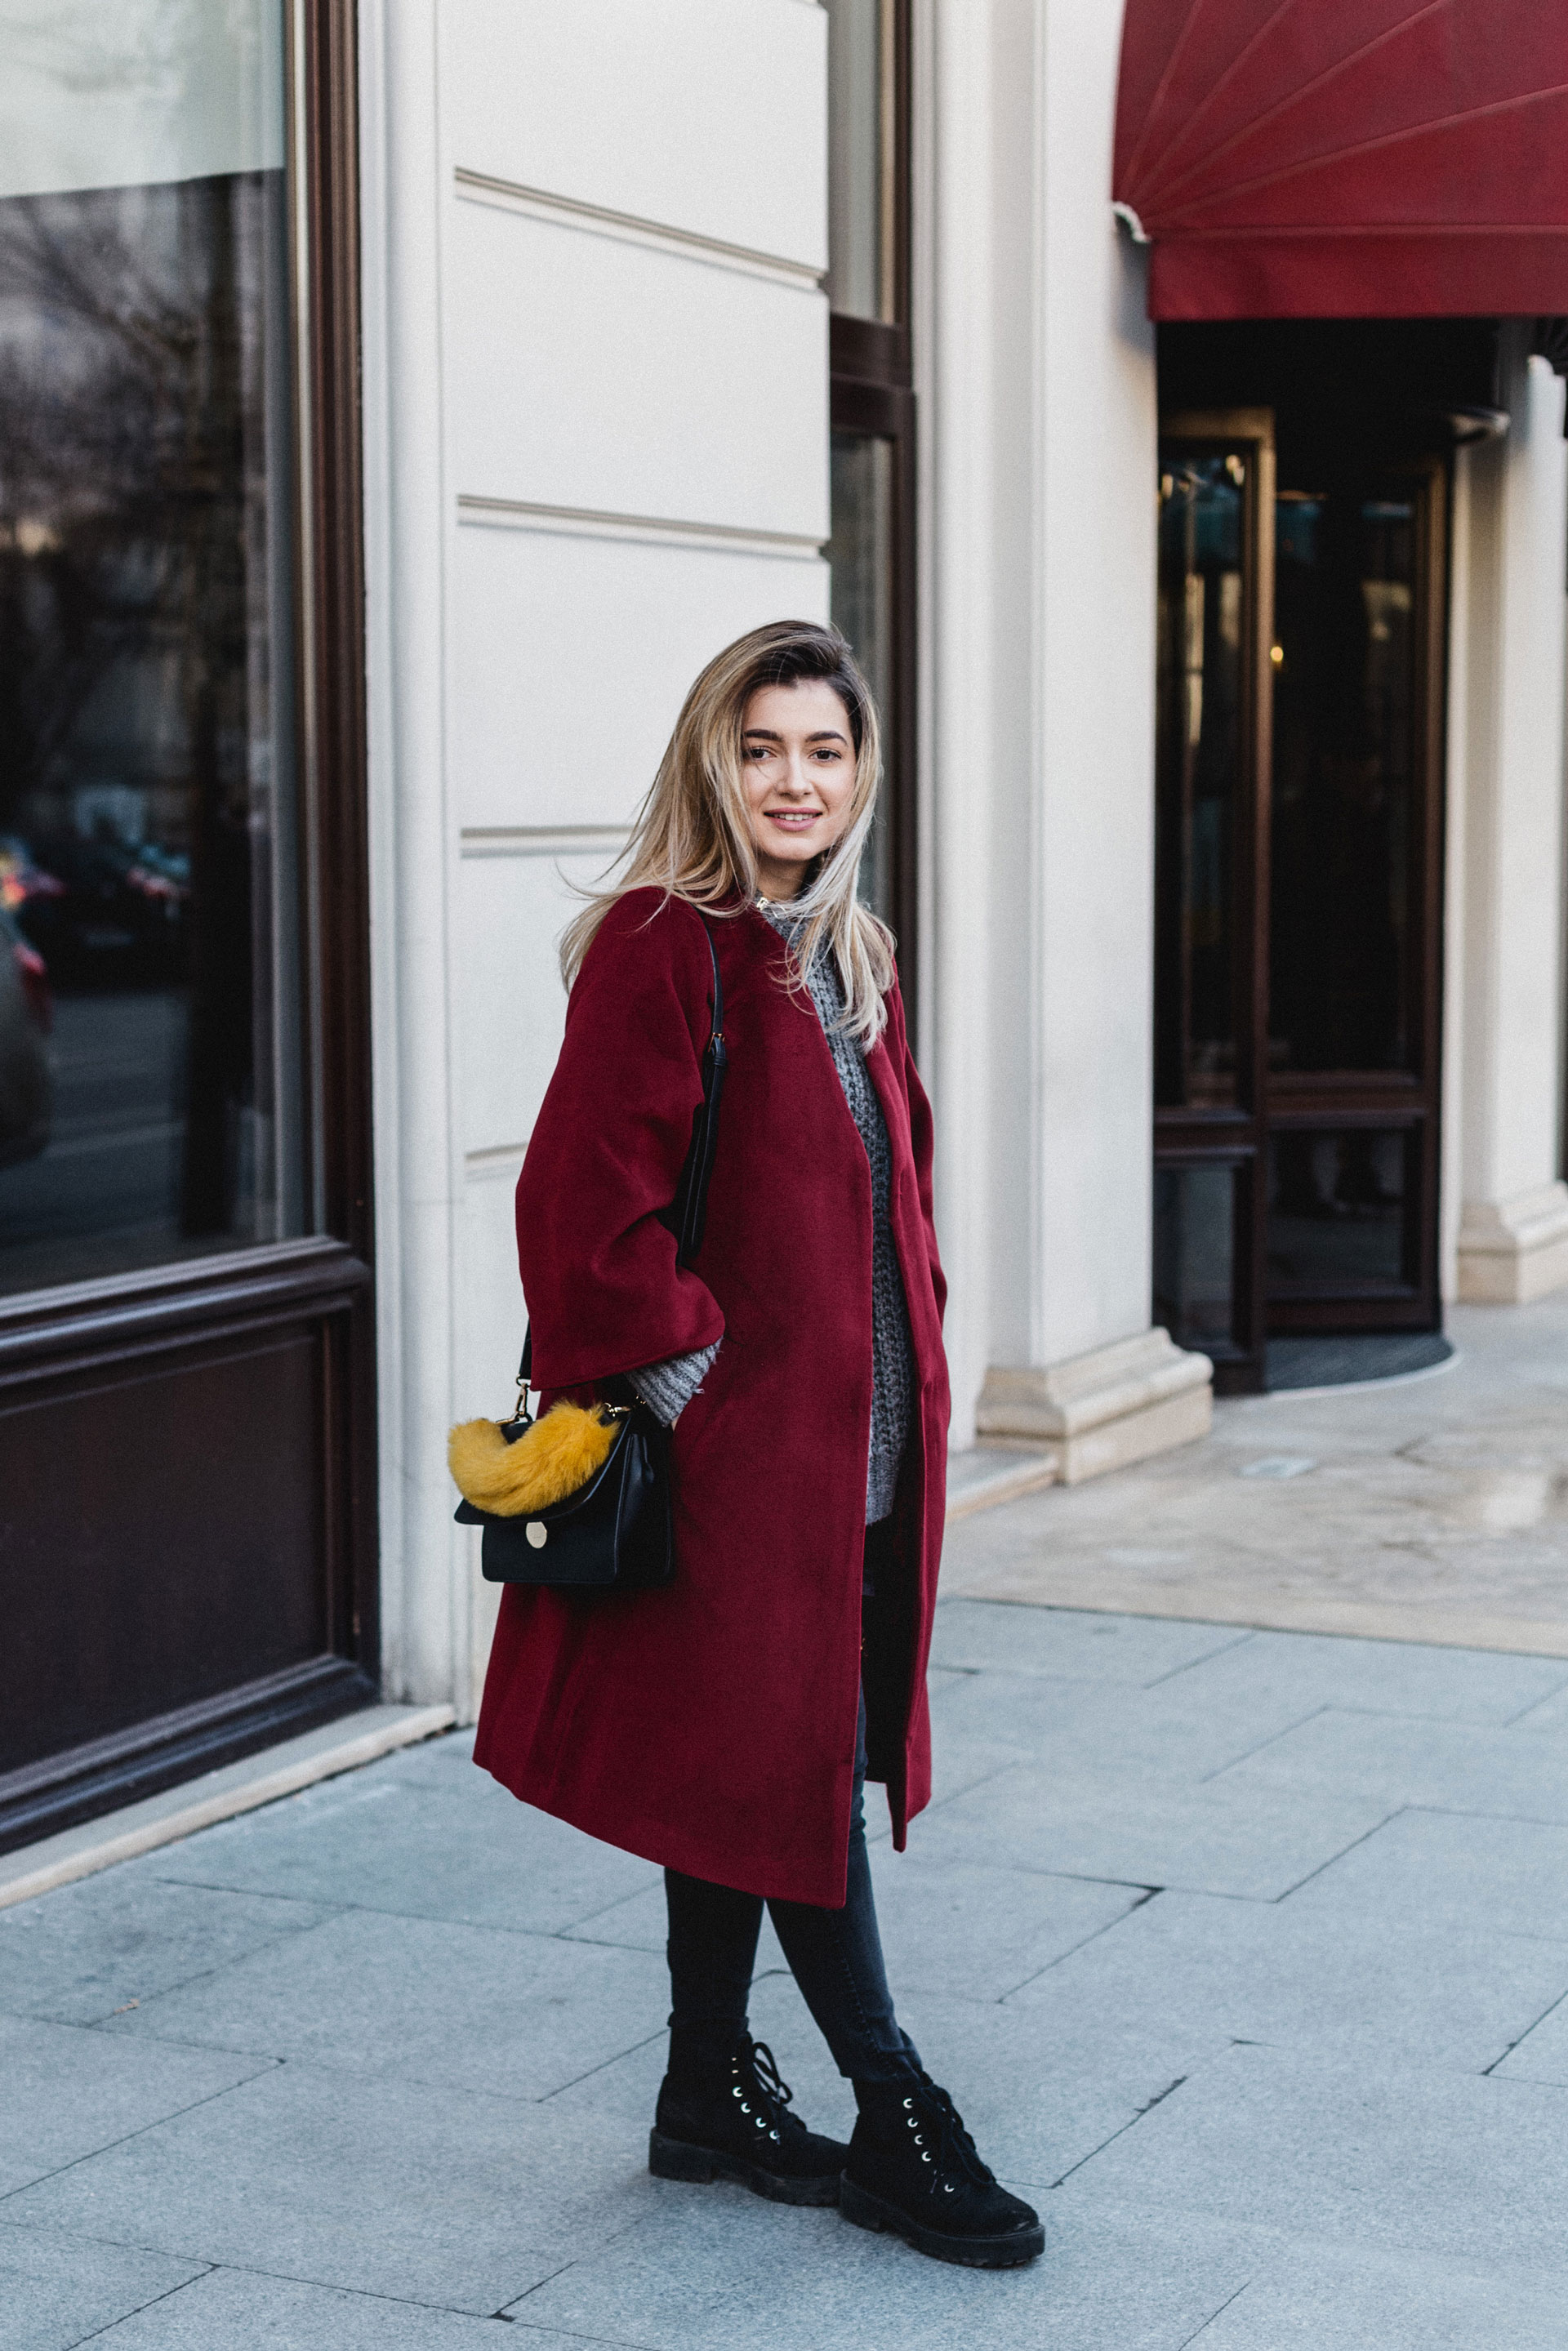 BIG RED COAT & comfort zone